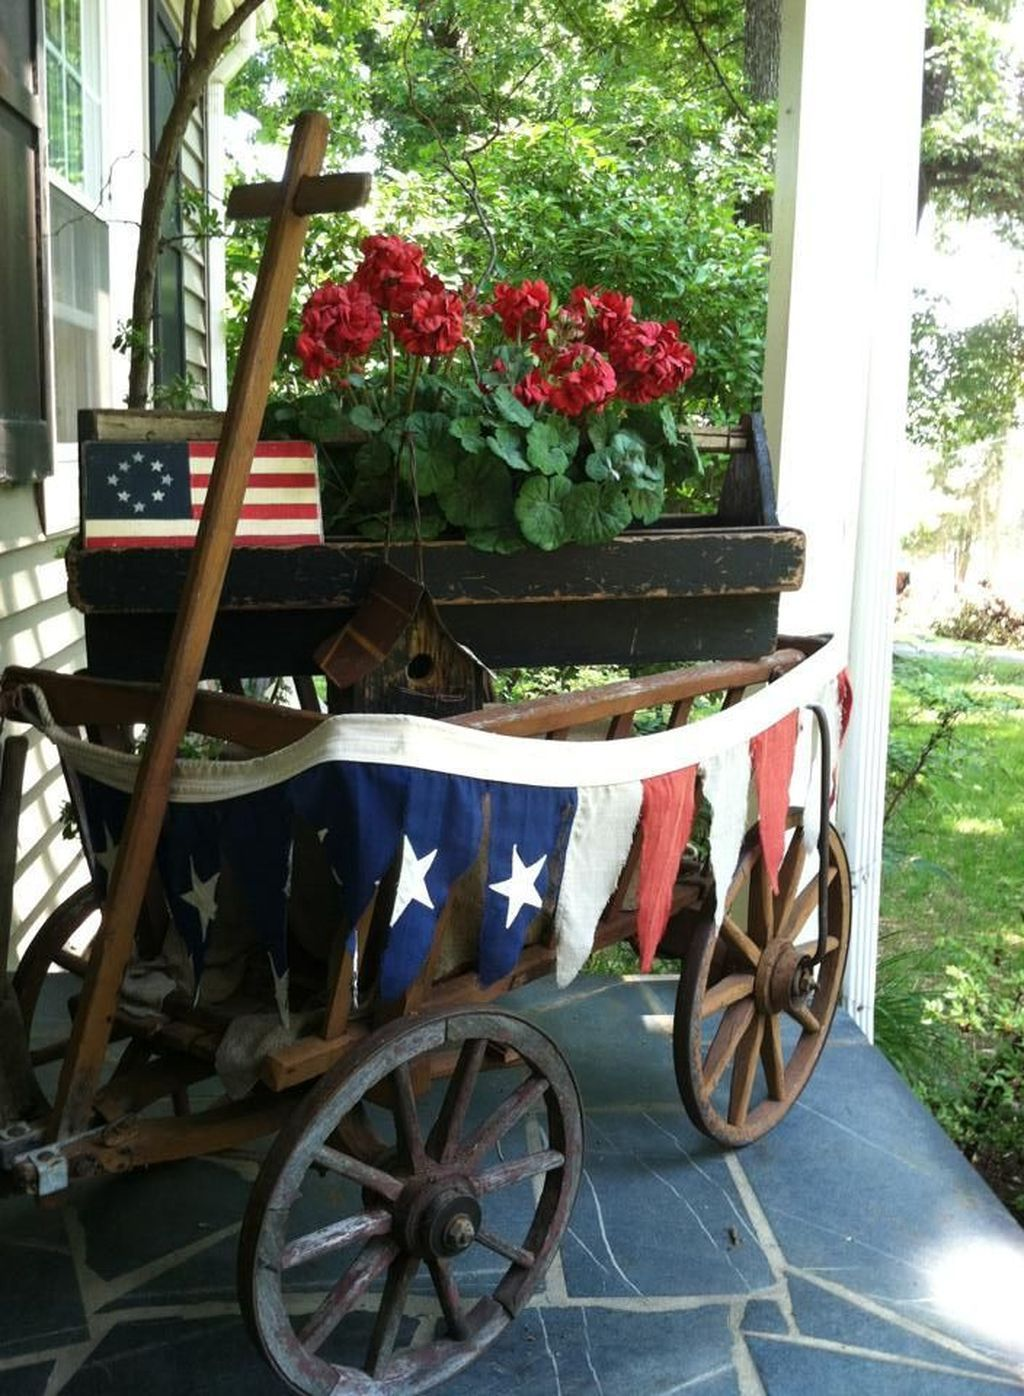 30 Easy Outdoor Decoration Ideas For Independence Day Trenduhome 4th Of July Decorations Patriotic Decorations Fourth Of July Decor